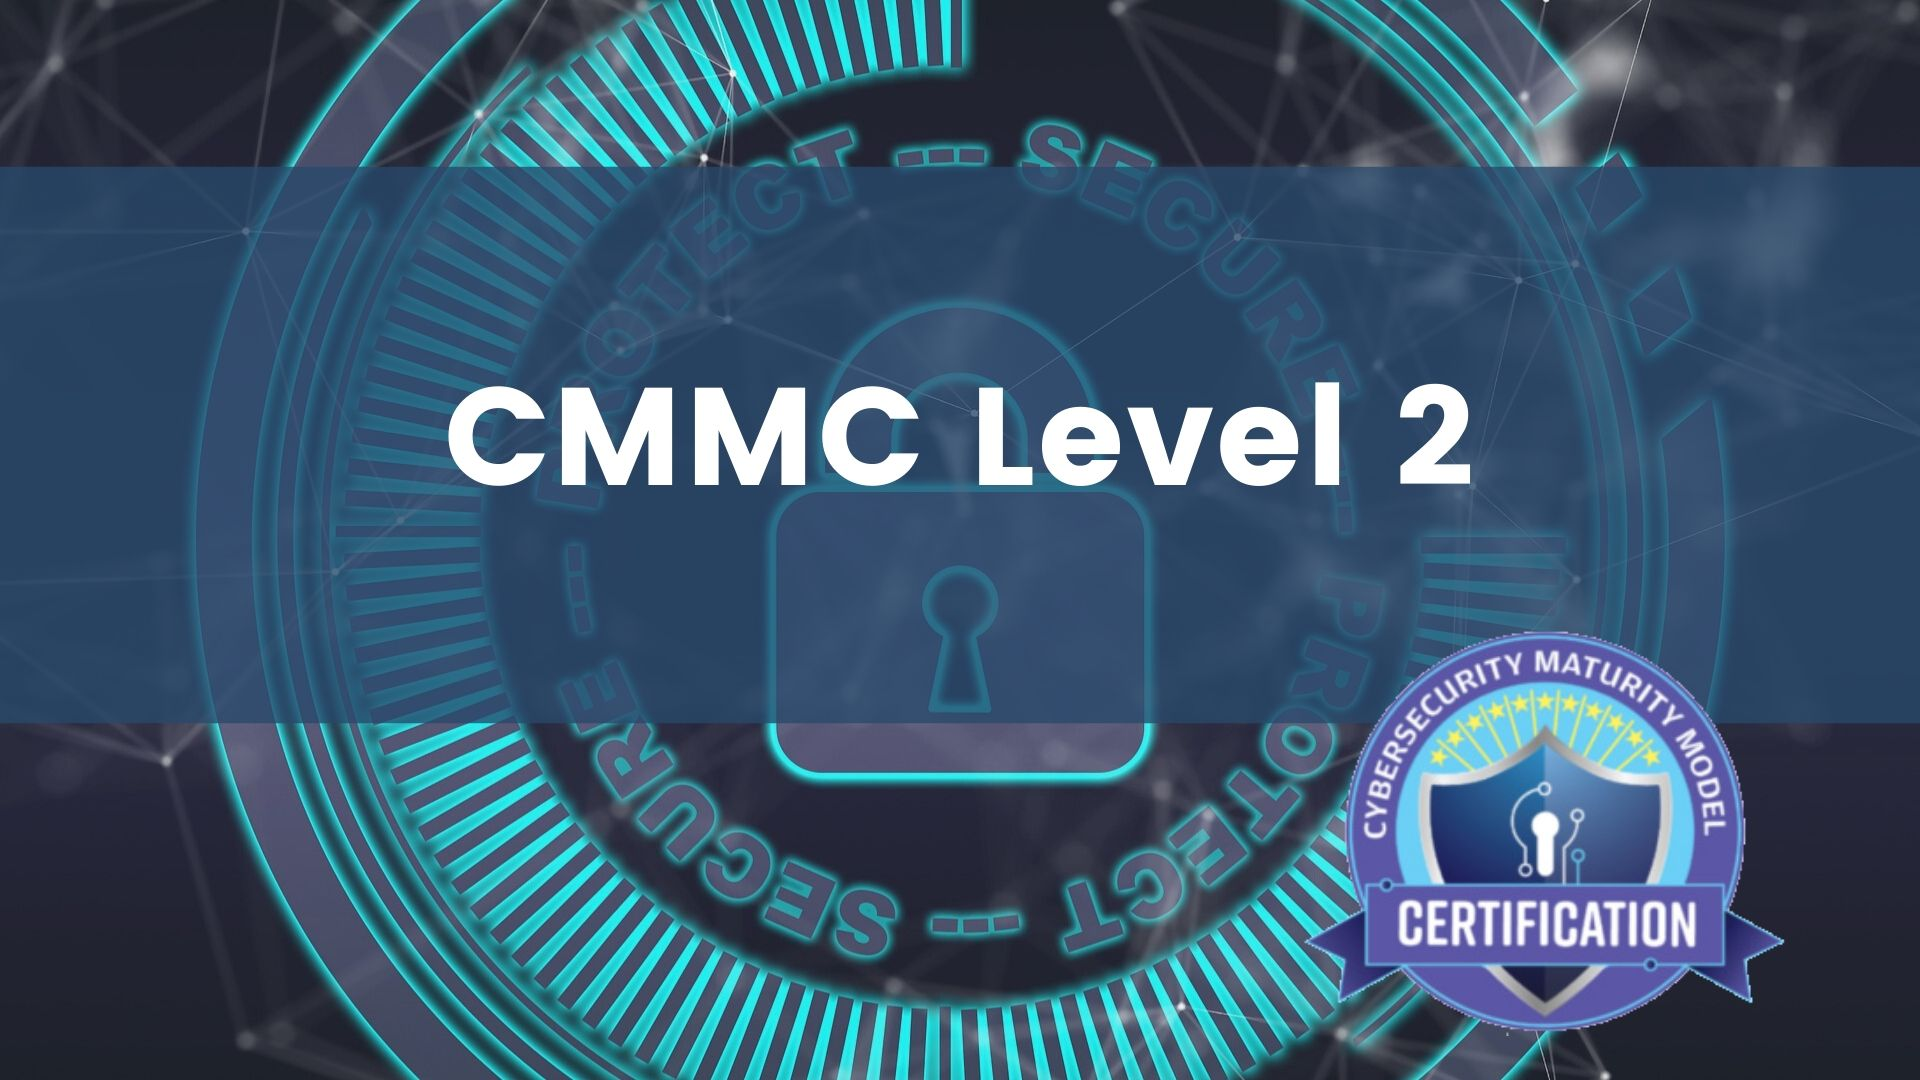 CMMC Level 2 course image